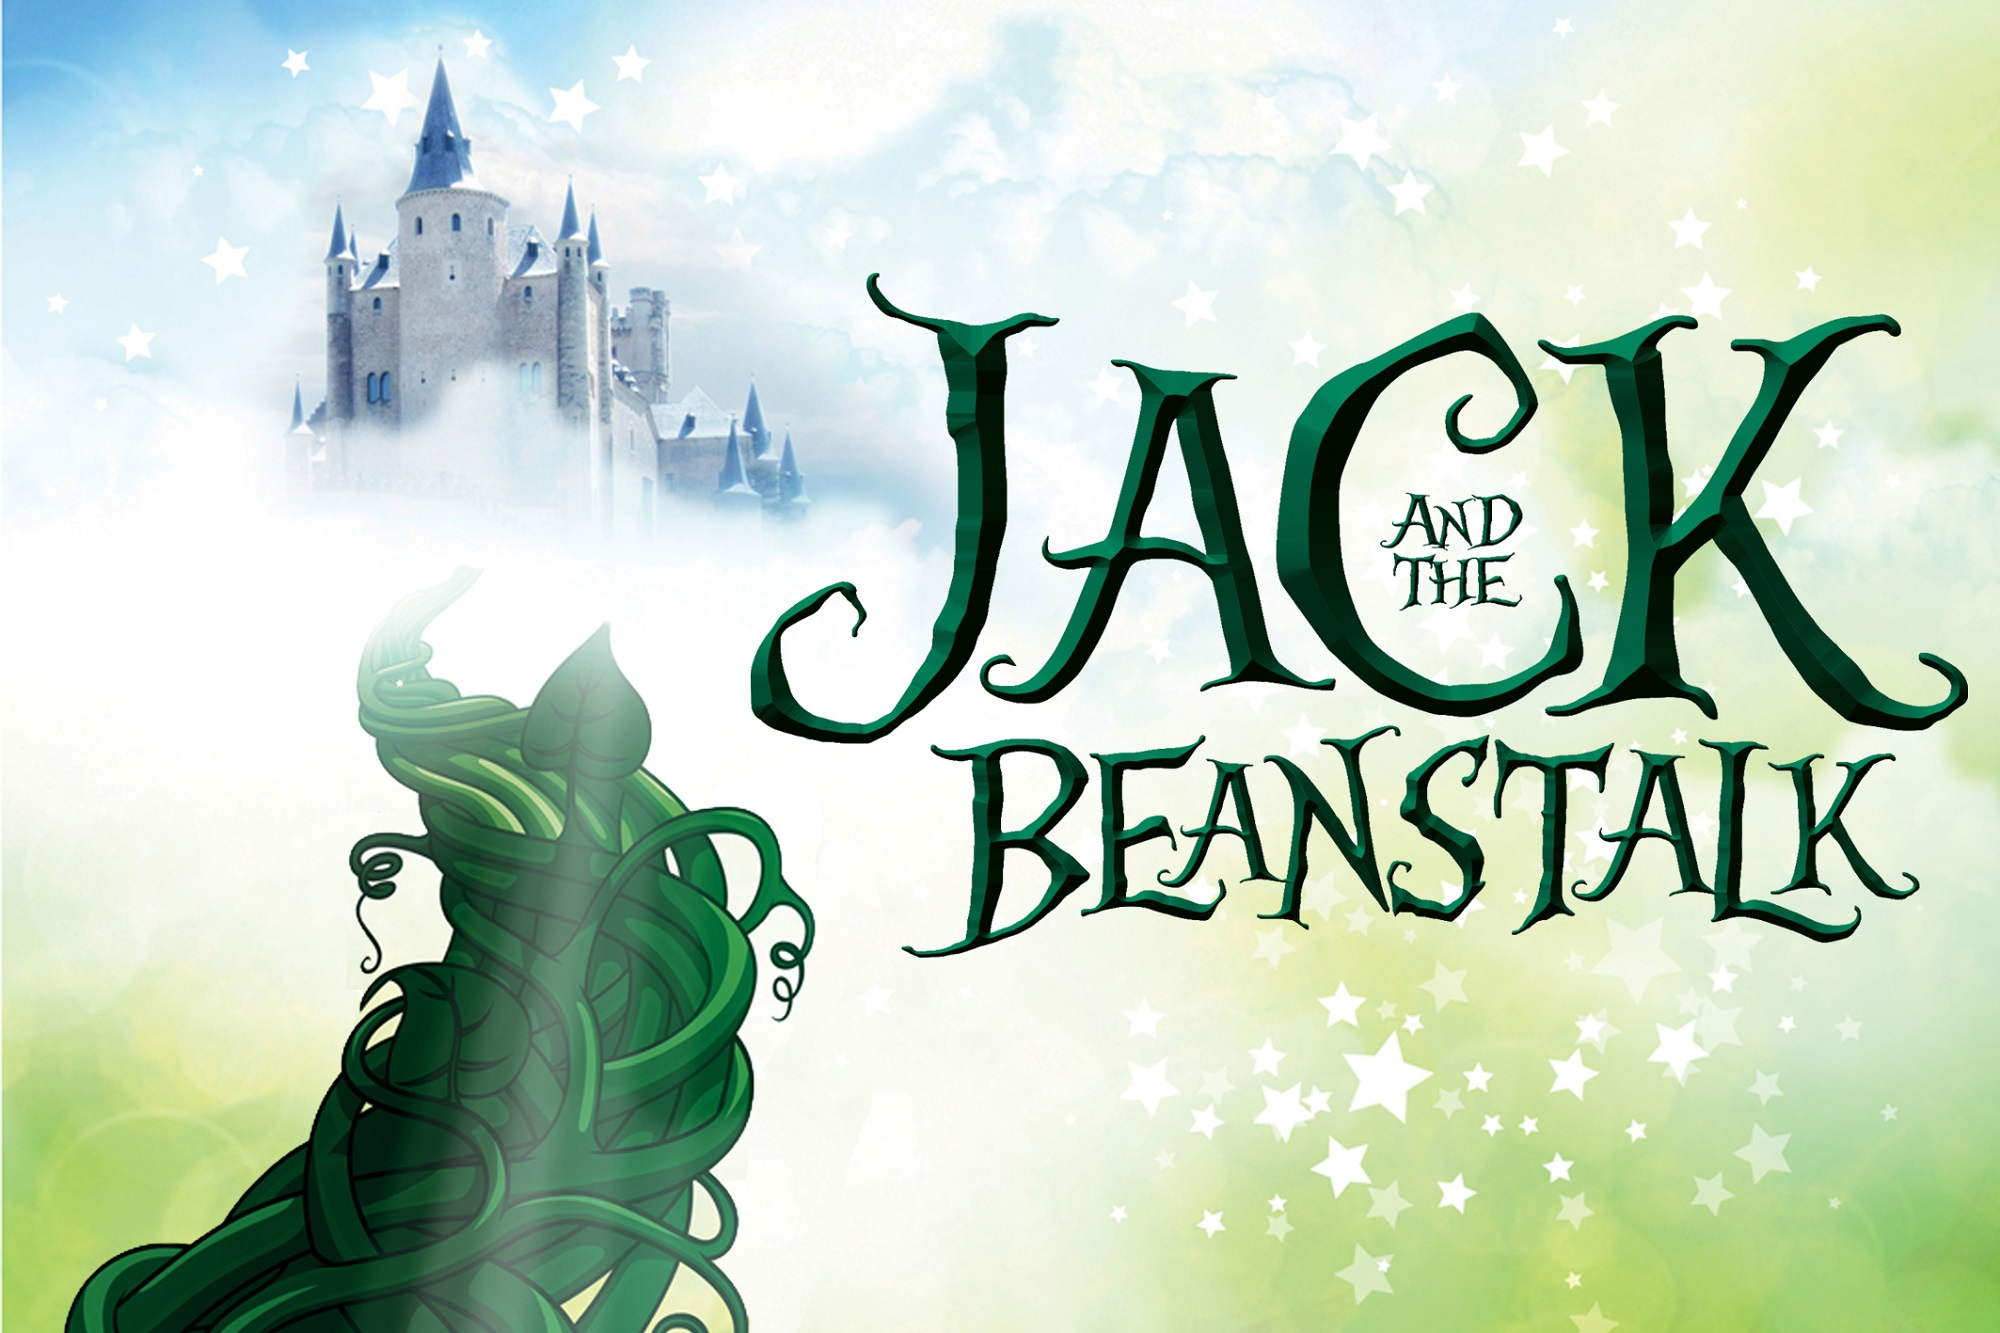 jack and the beanstalk images for kids